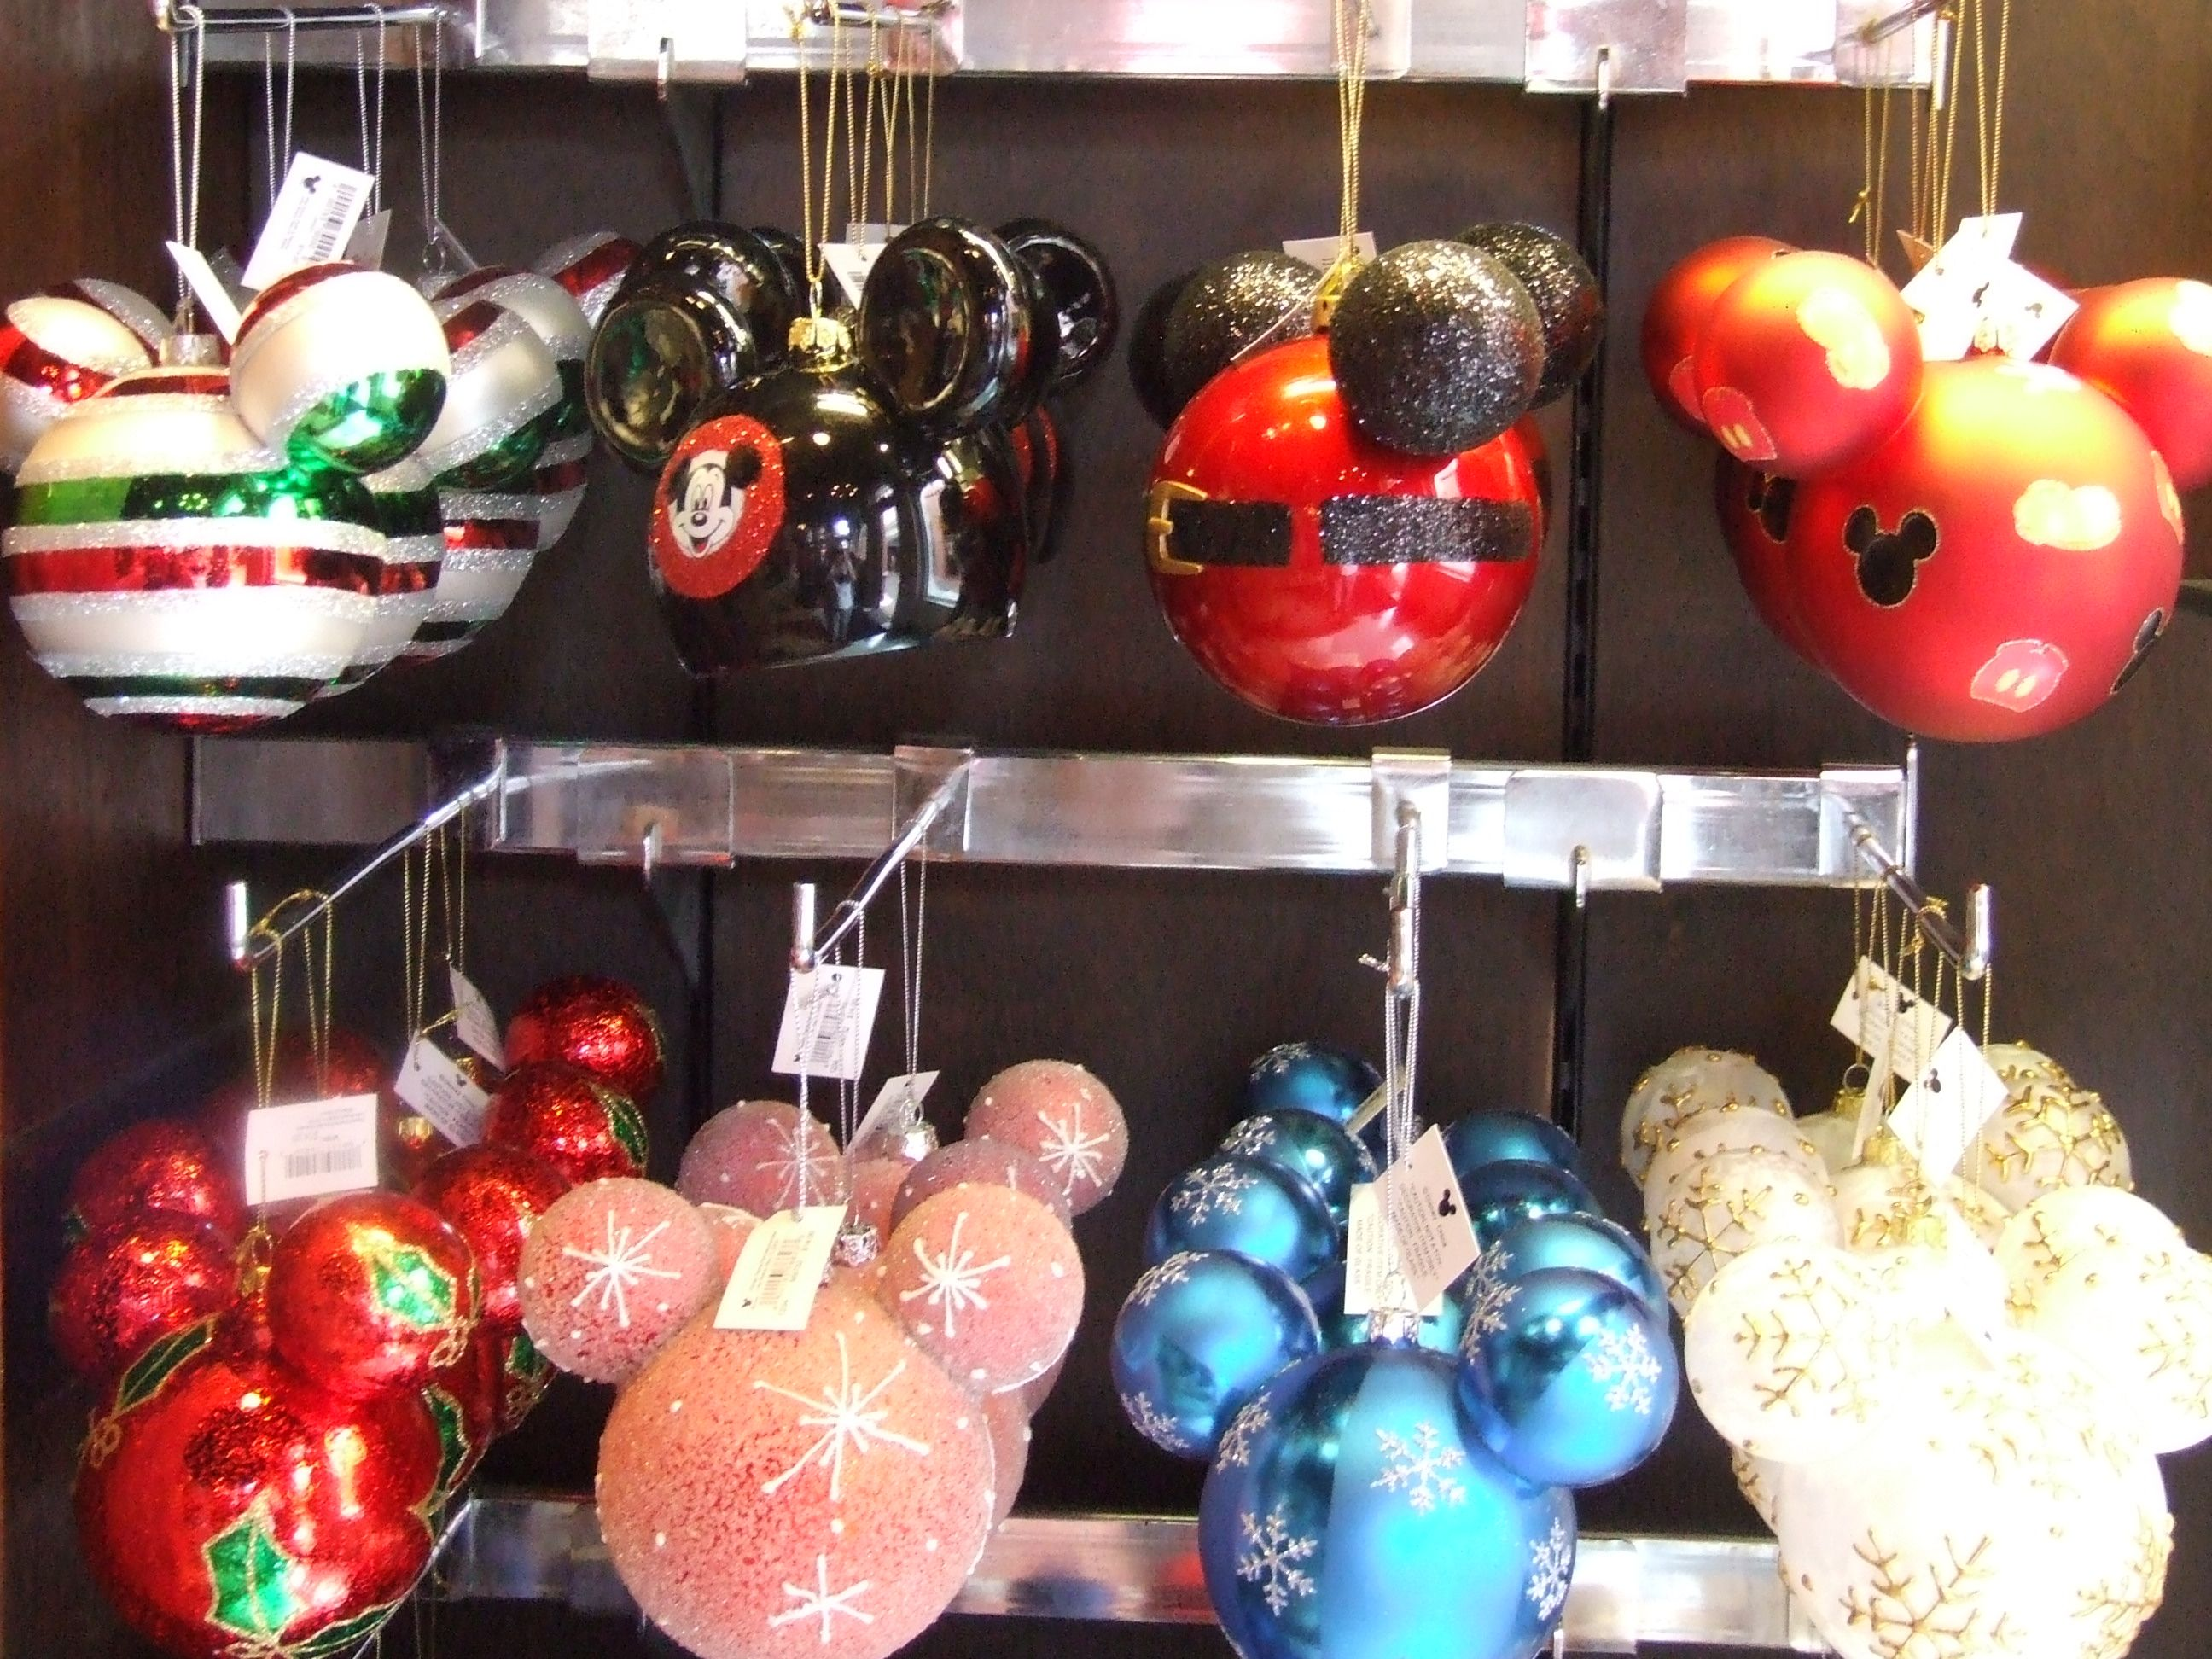 Pin By Michele Cornwall Theye On Disney Disney And More Disney Disney Christmas Ornaments Disney Christmas Mickey Christmas